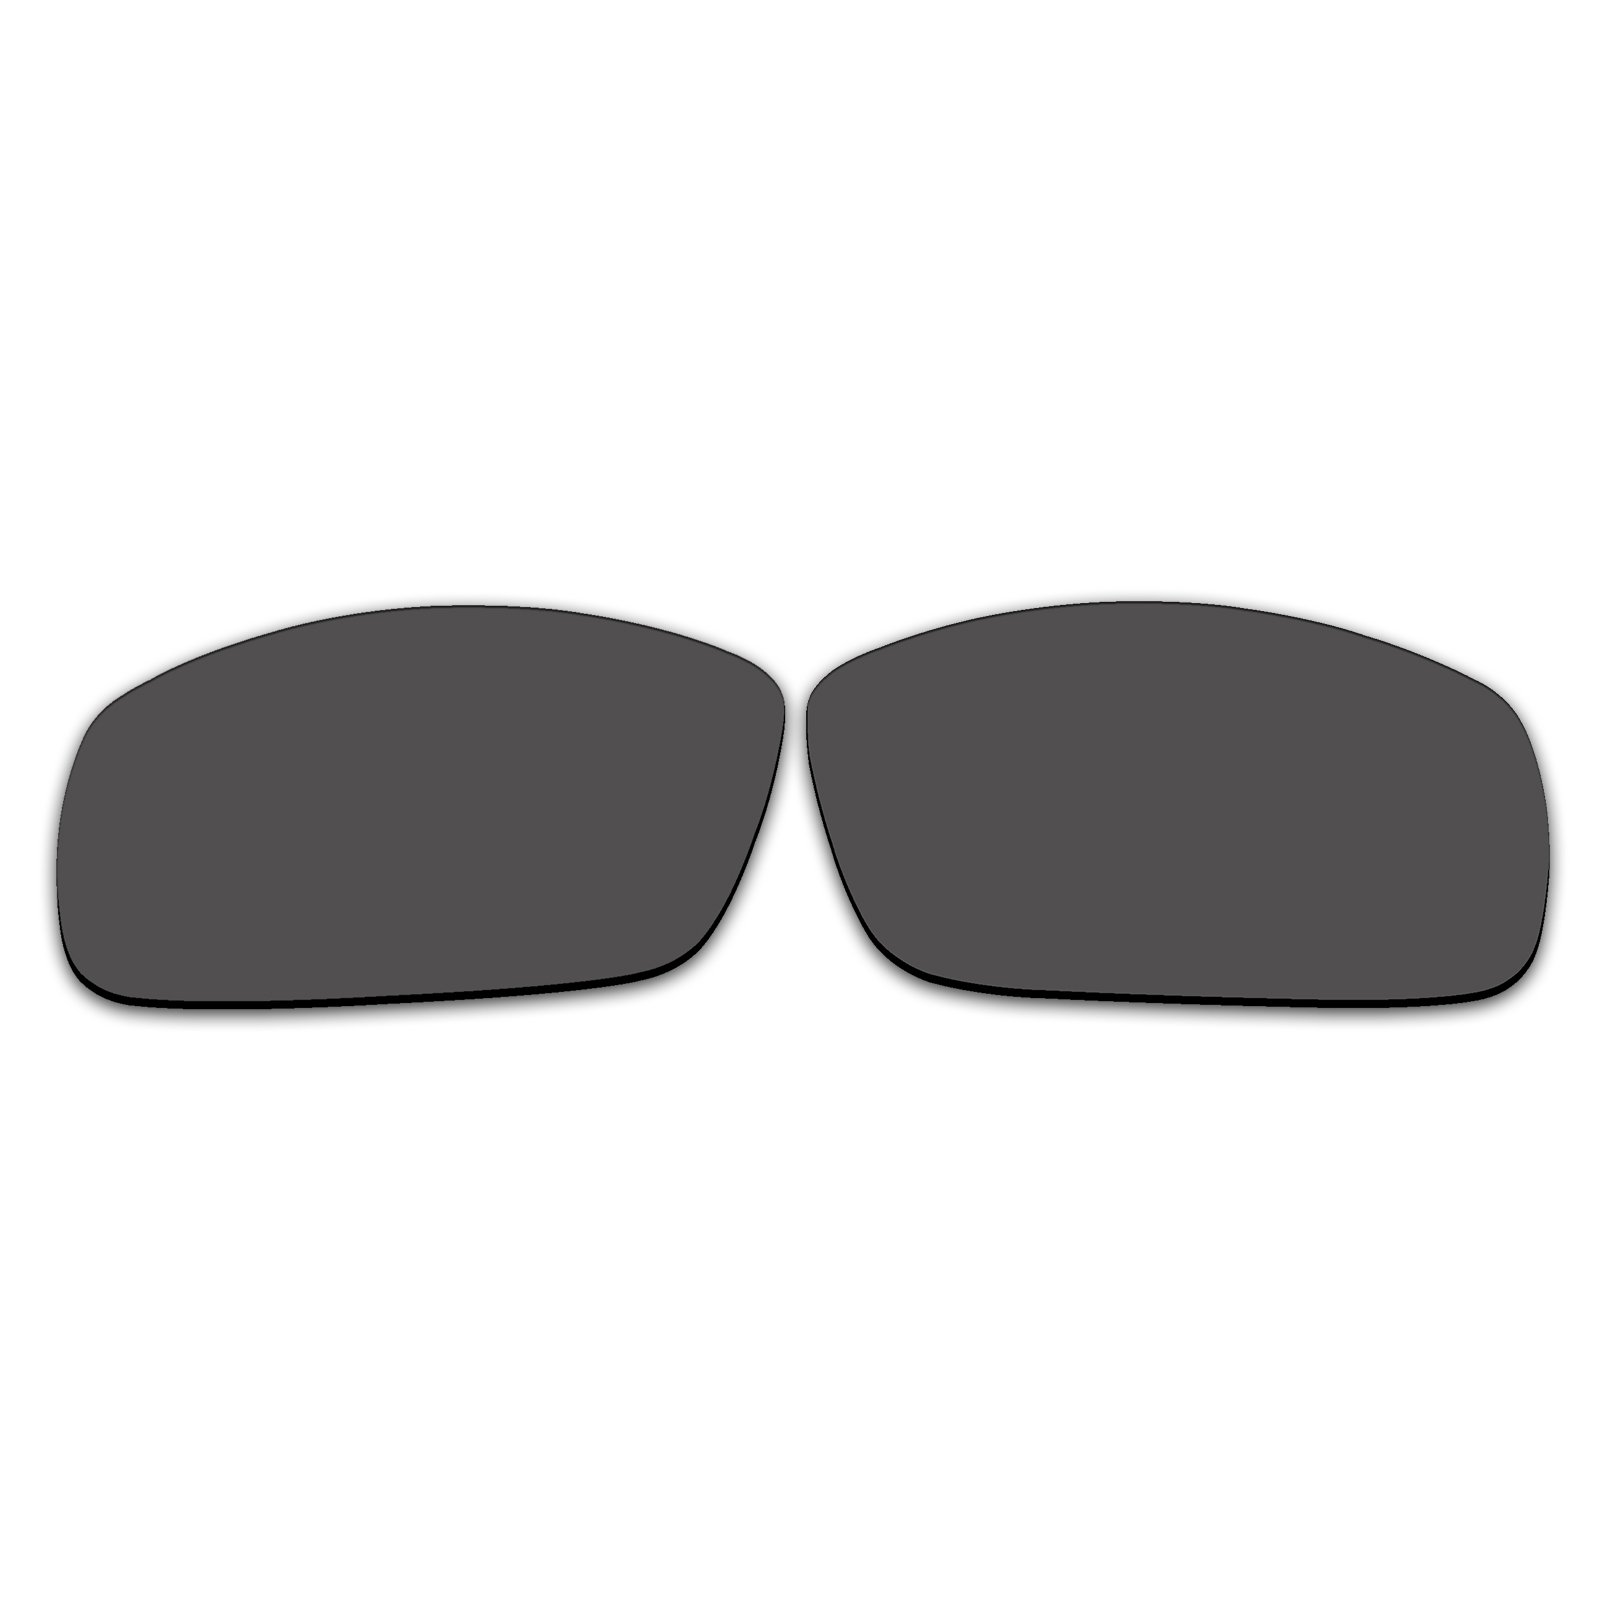 Polarized Replacement Sunglasses Lenses for Spy Optic Logan - Gray Mirror by Ac Lens